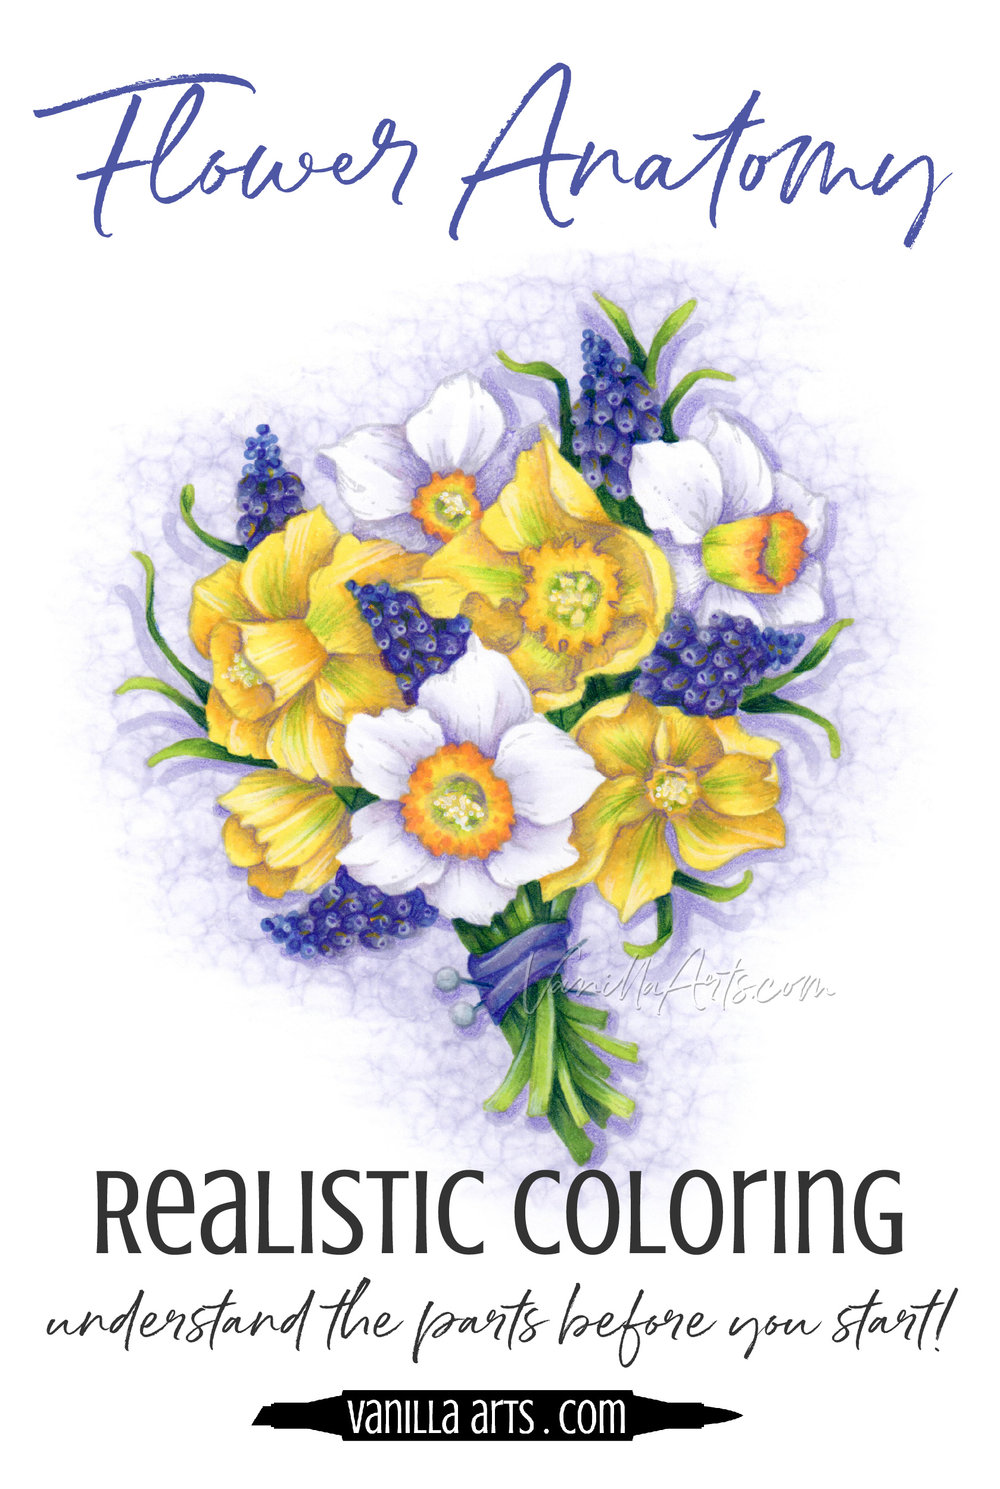 Do you dream about coloring realistic botanicals with Copic Markers? Research your flowers BEFORE you start coloring for added depth, dimension and realism.   VanillaArts.com   #copic #adultcoloring #howtocolor